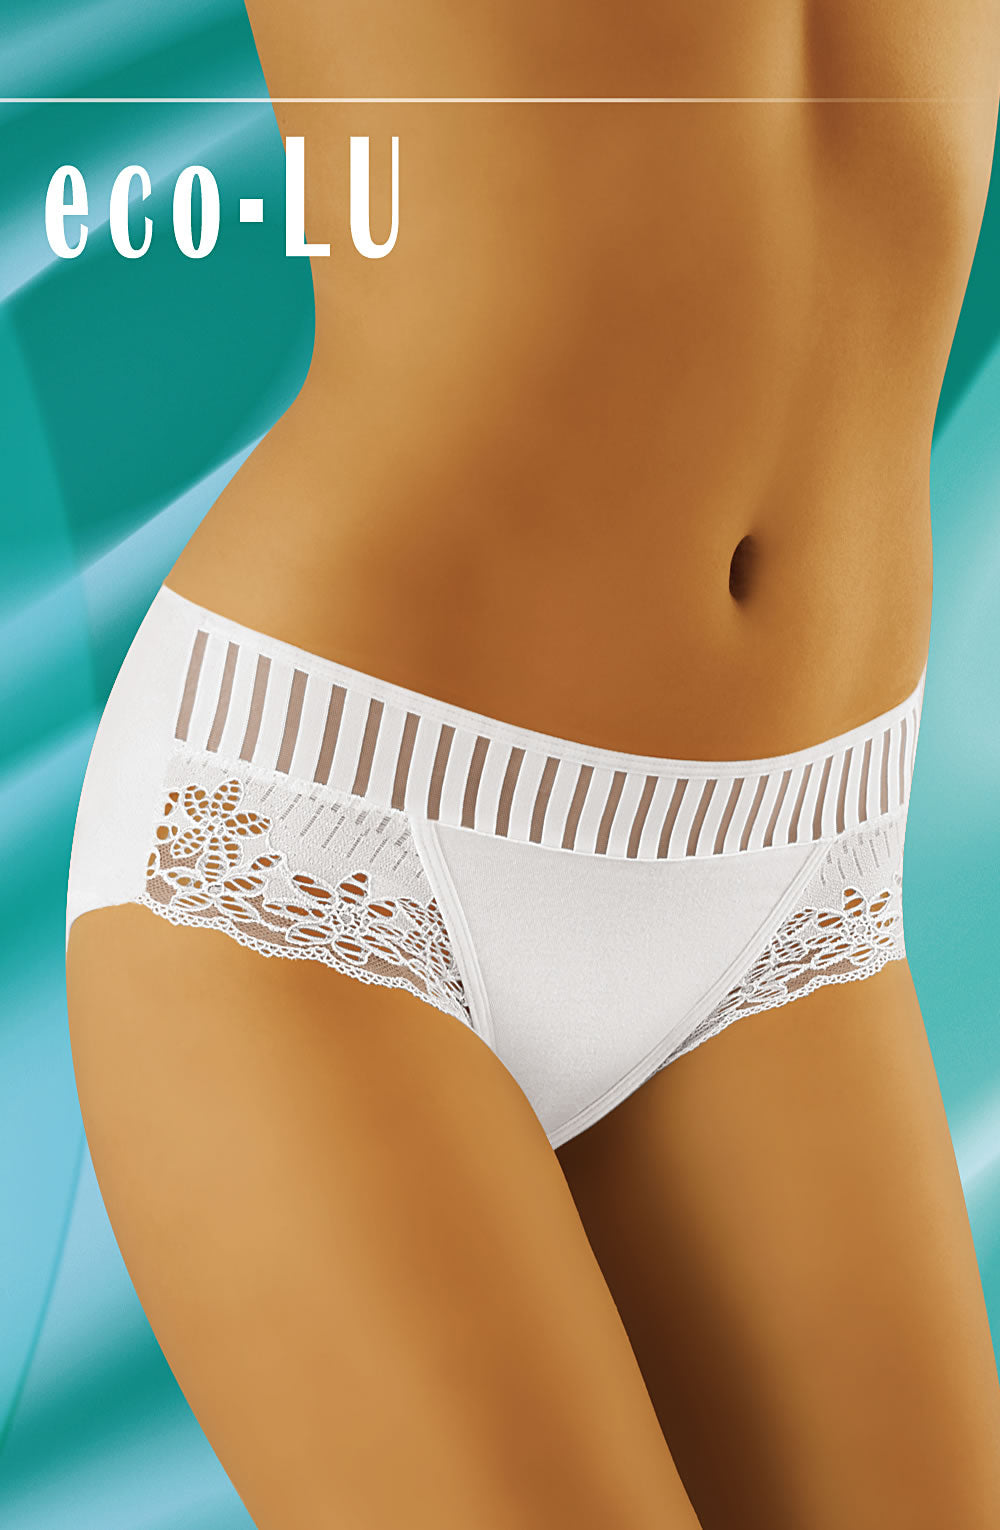 Wolbar eco-LU Various  Briefs, Briefs & Thongs, NEWLY-IMPORTED, Wolbar - So Luxe Lingerie